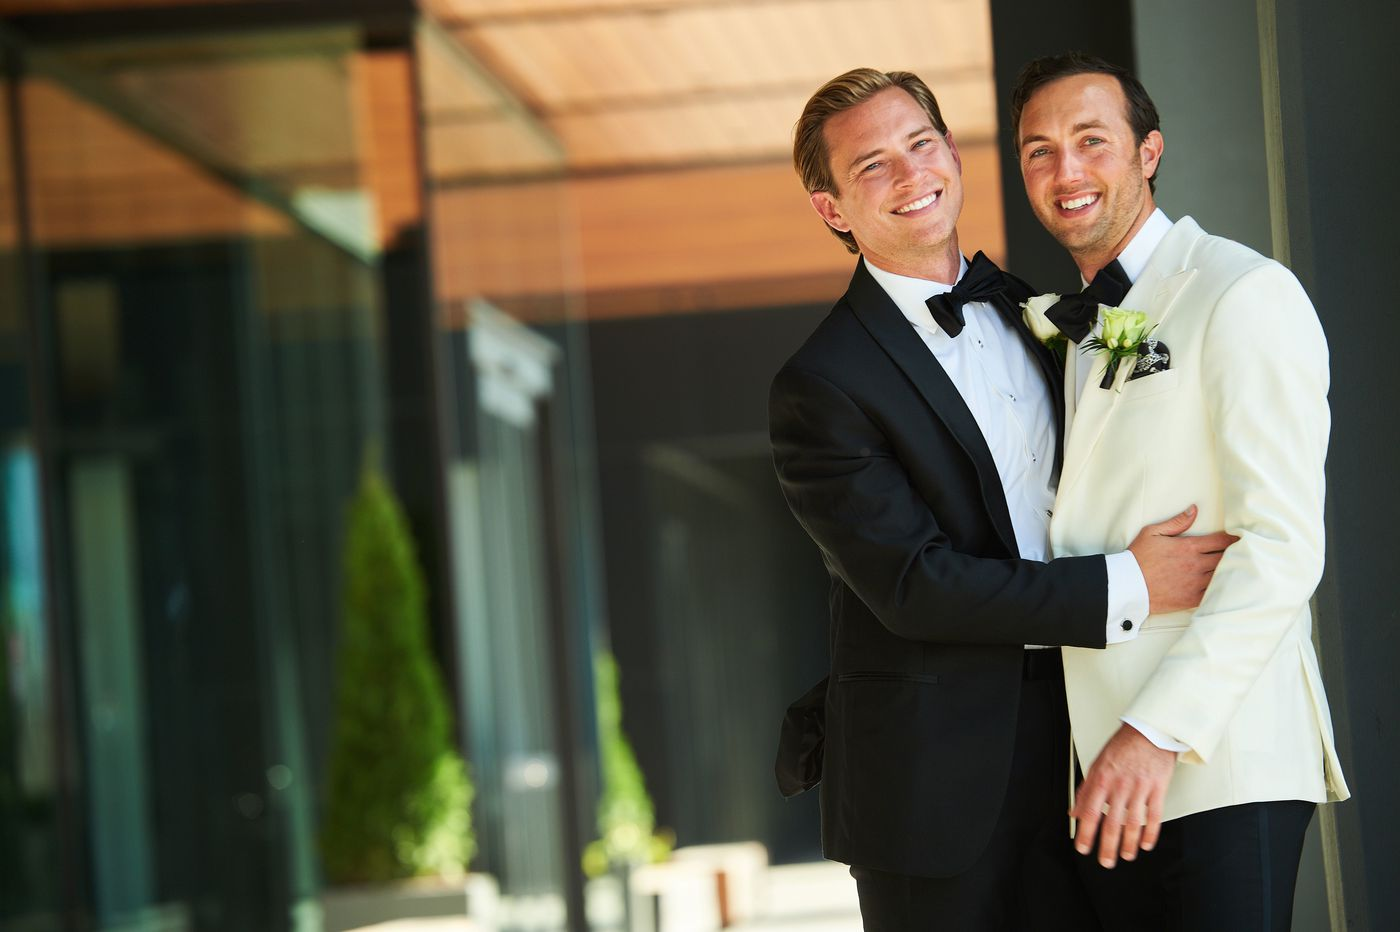 An unexpected move to Philly — and a wedding